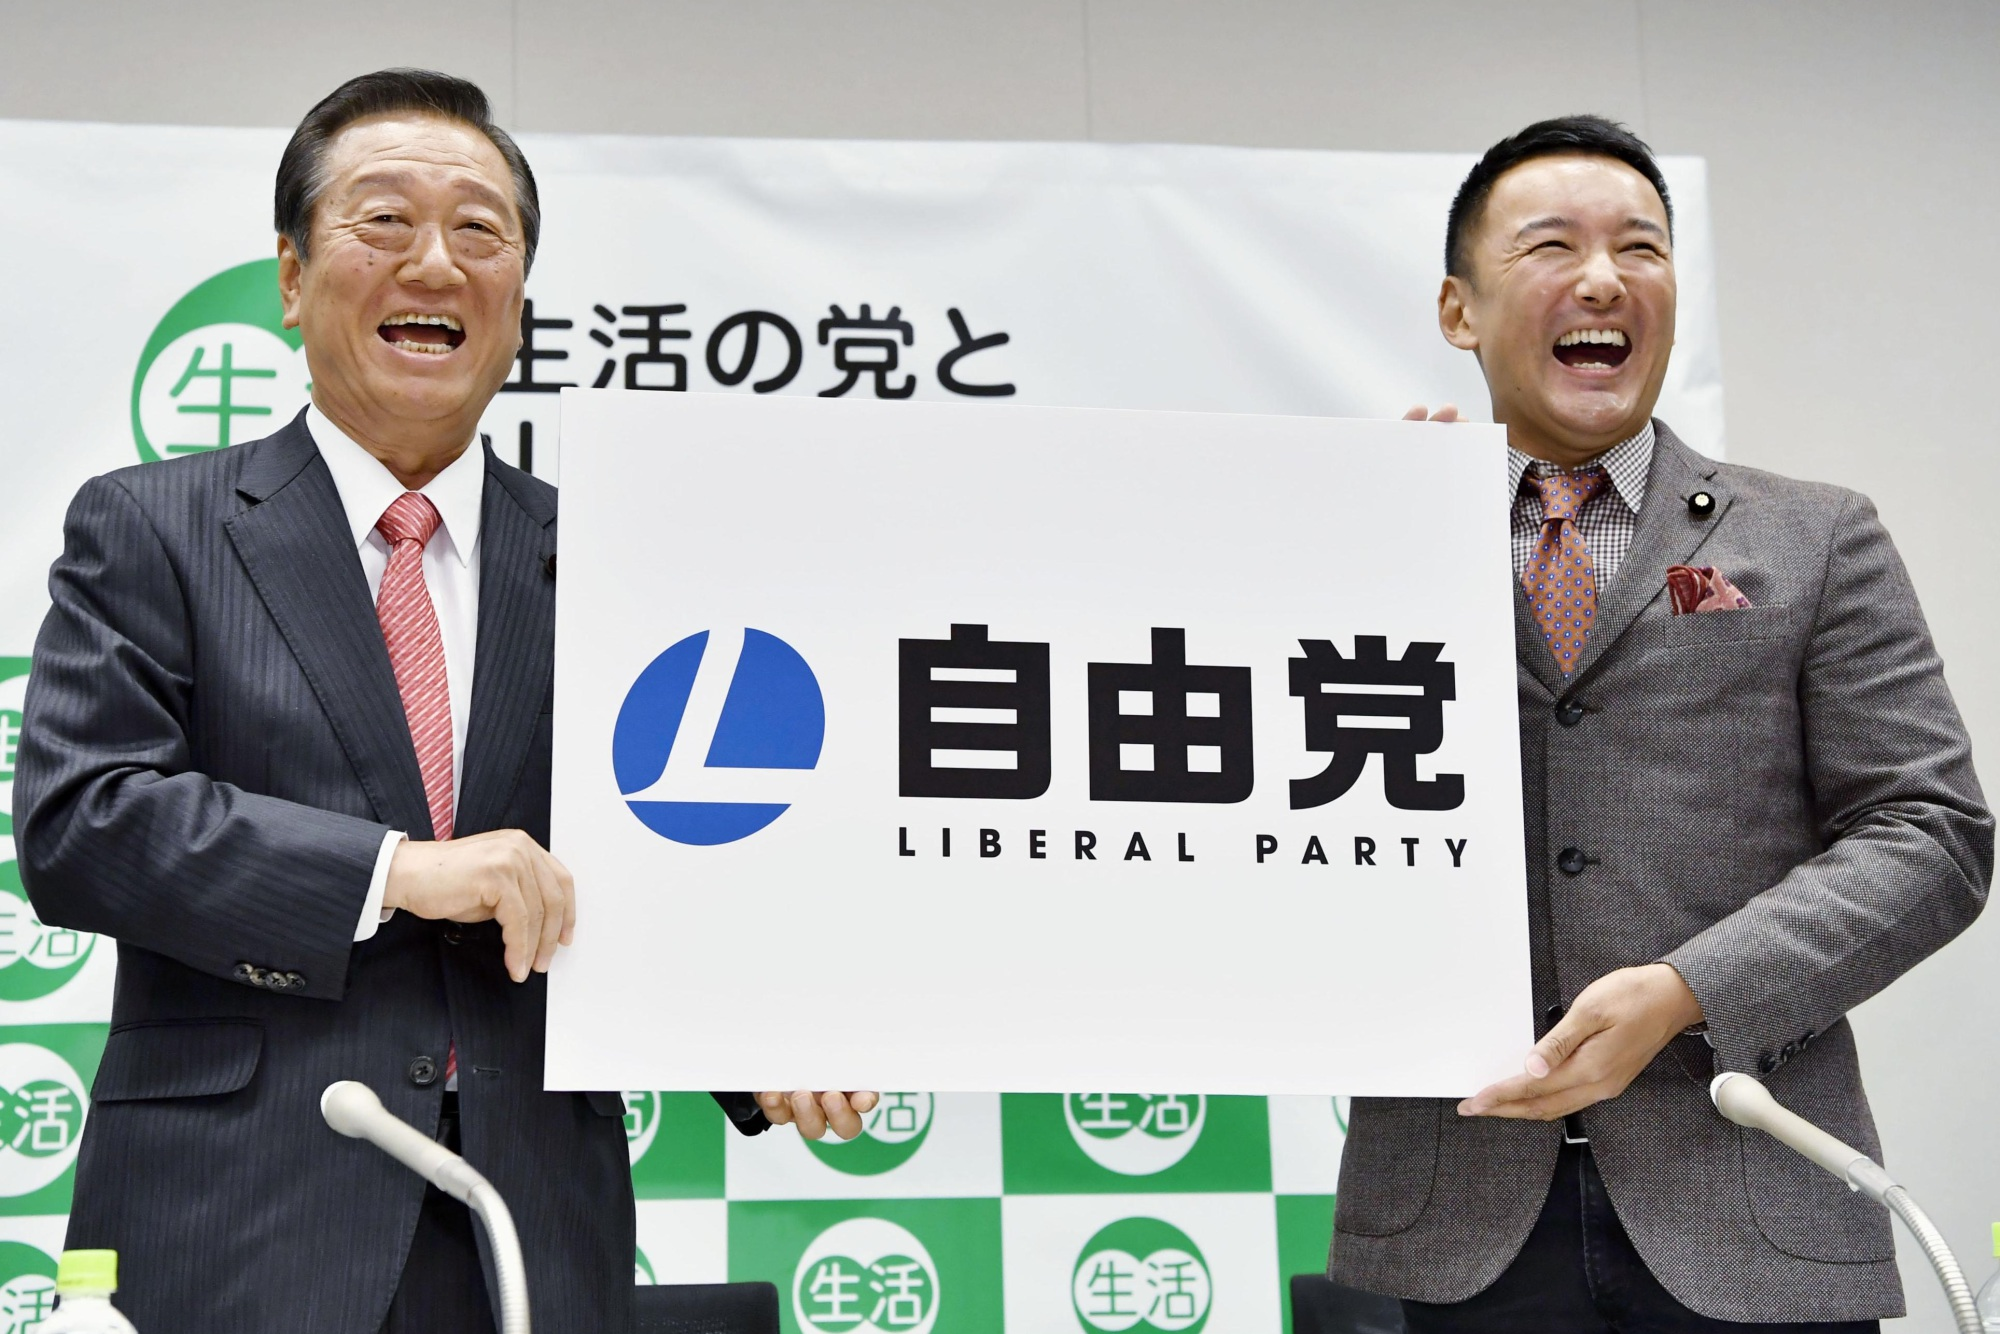 Lawmakers Ichiro Ozawa (left) and Taro Yamamoto announce their party's name change in Tokyo on Wednesday. It will now be known as the Liberal Party. | KYODO